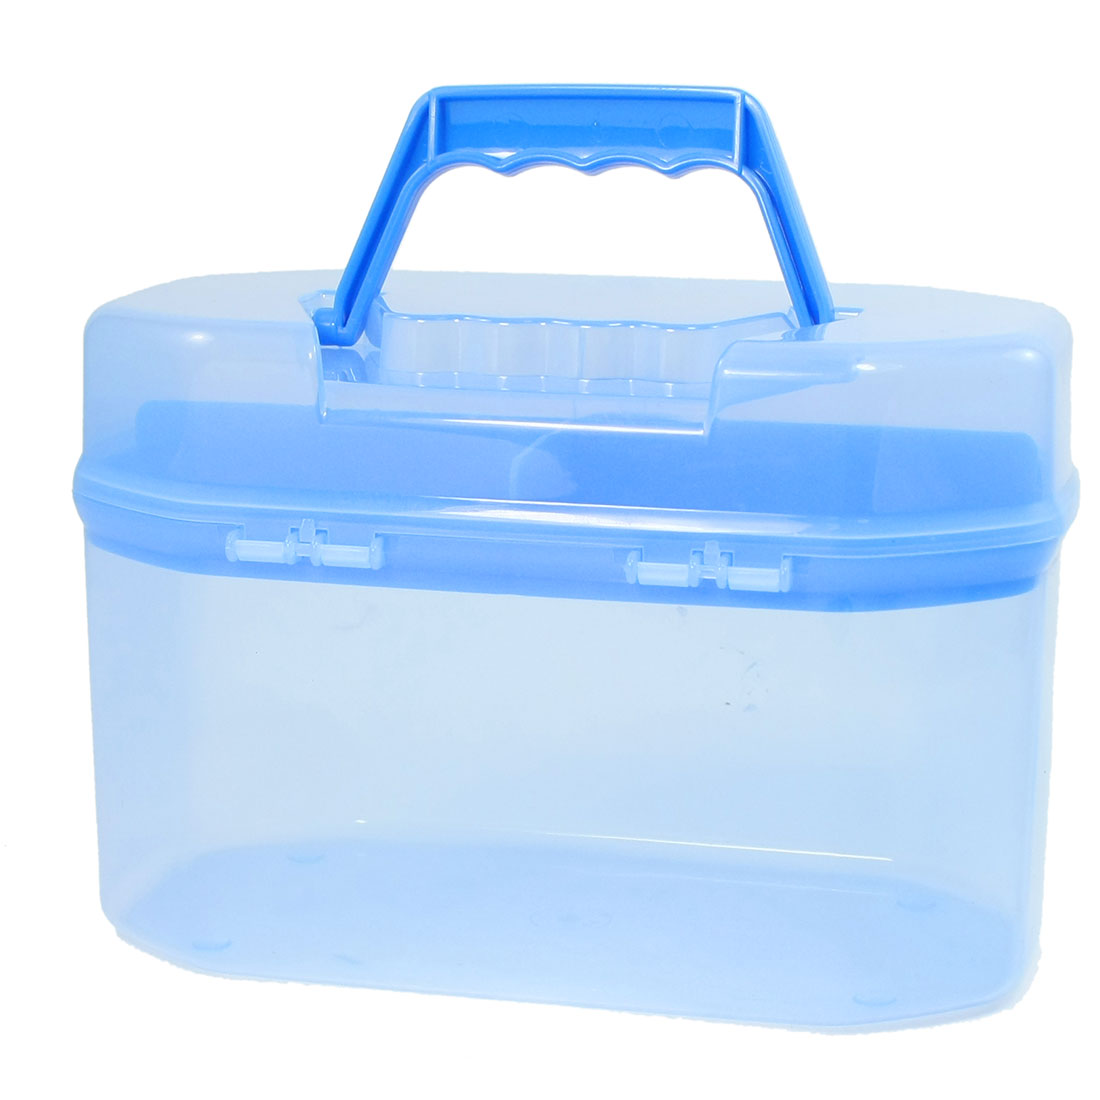 Unique Bargains Clear Blue Plastic Handle Flip Lock Household Storage Box